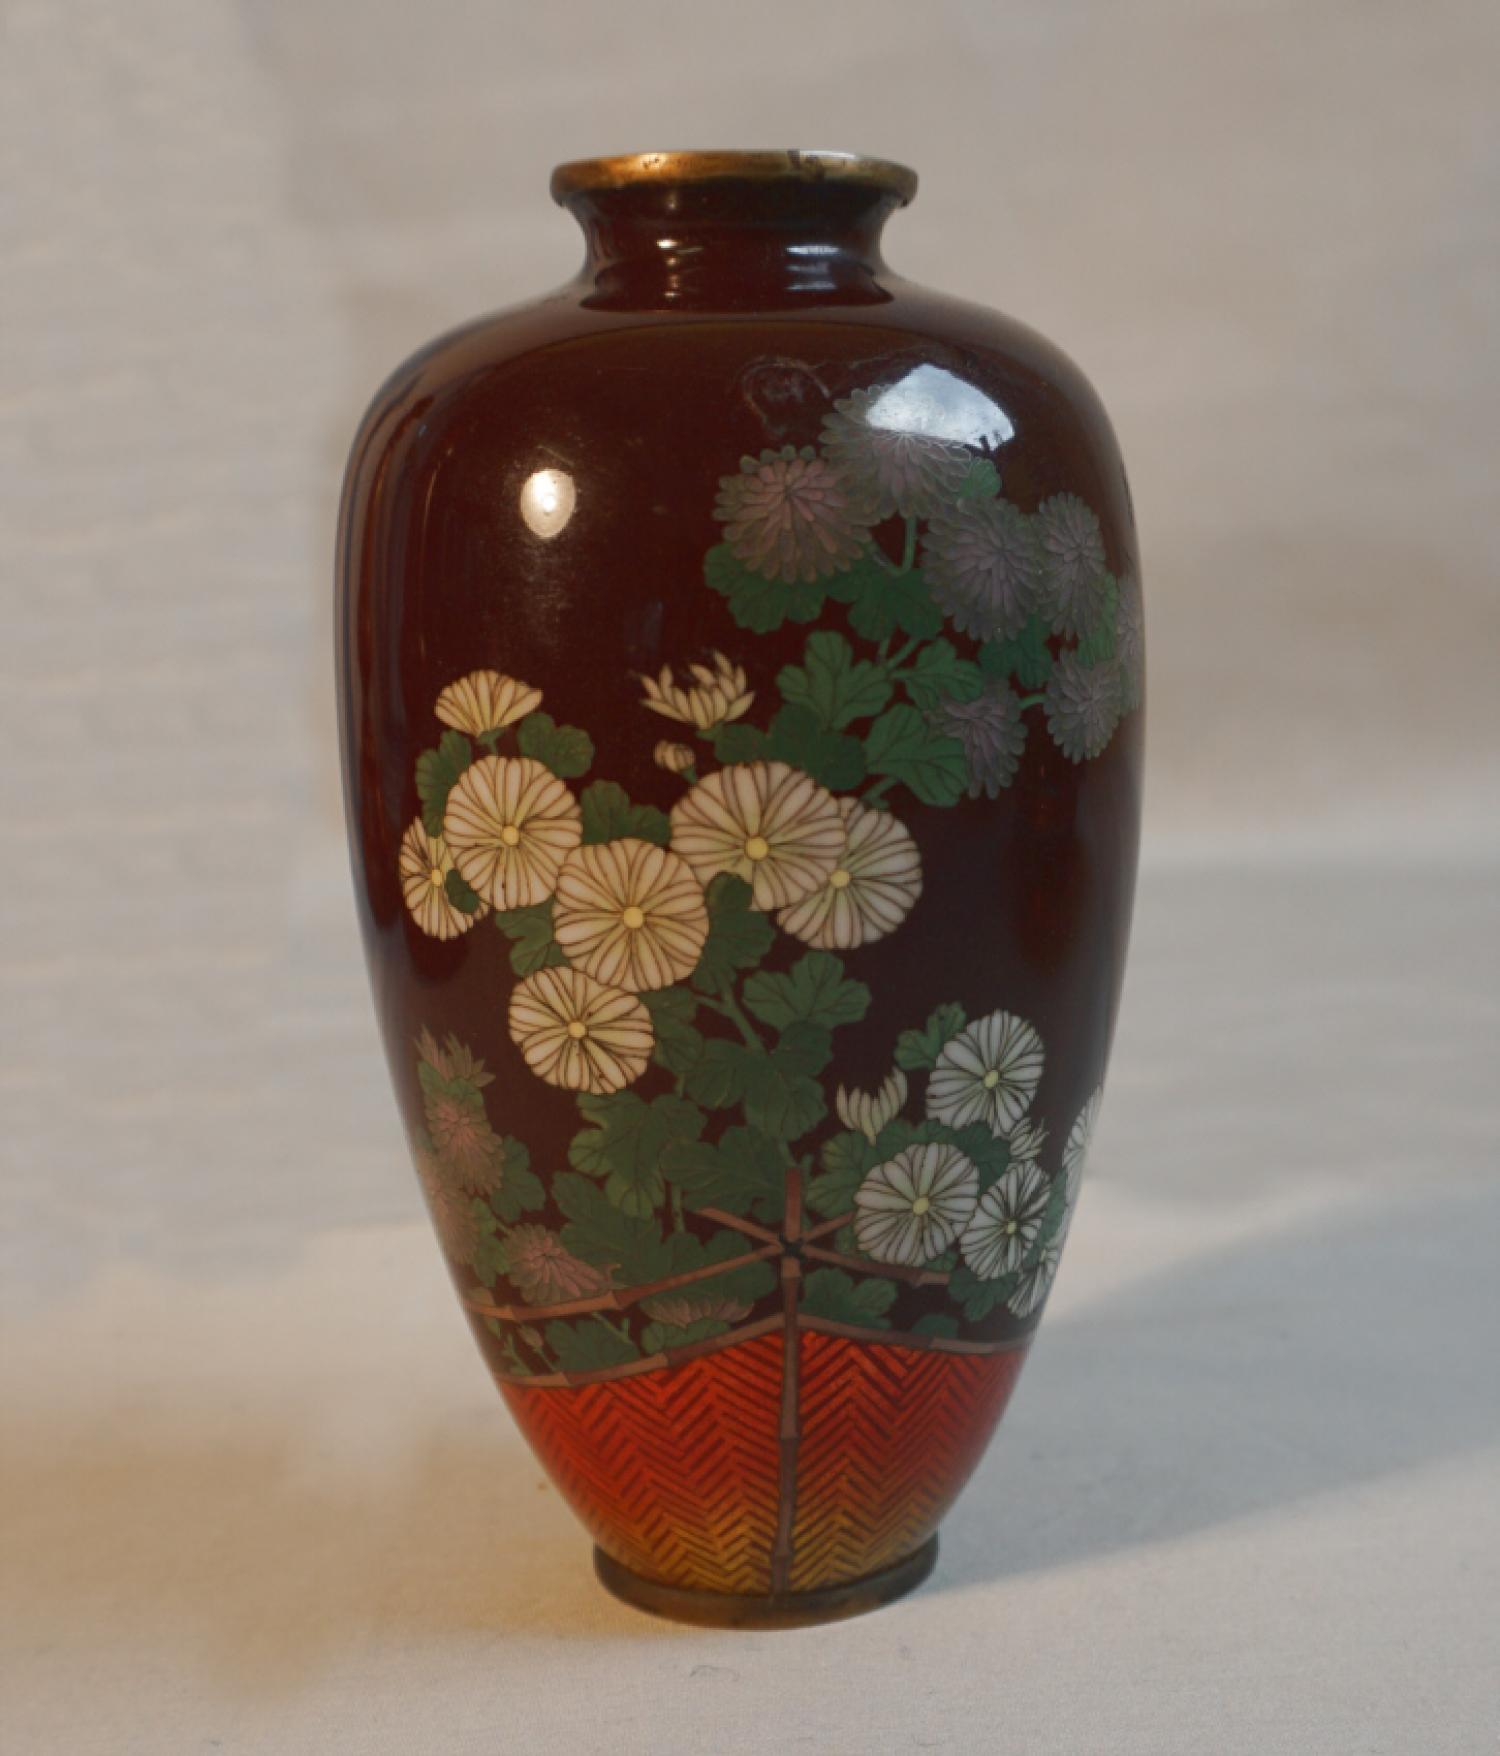 Antique Japanese cloisonne vase with chrysanthemums